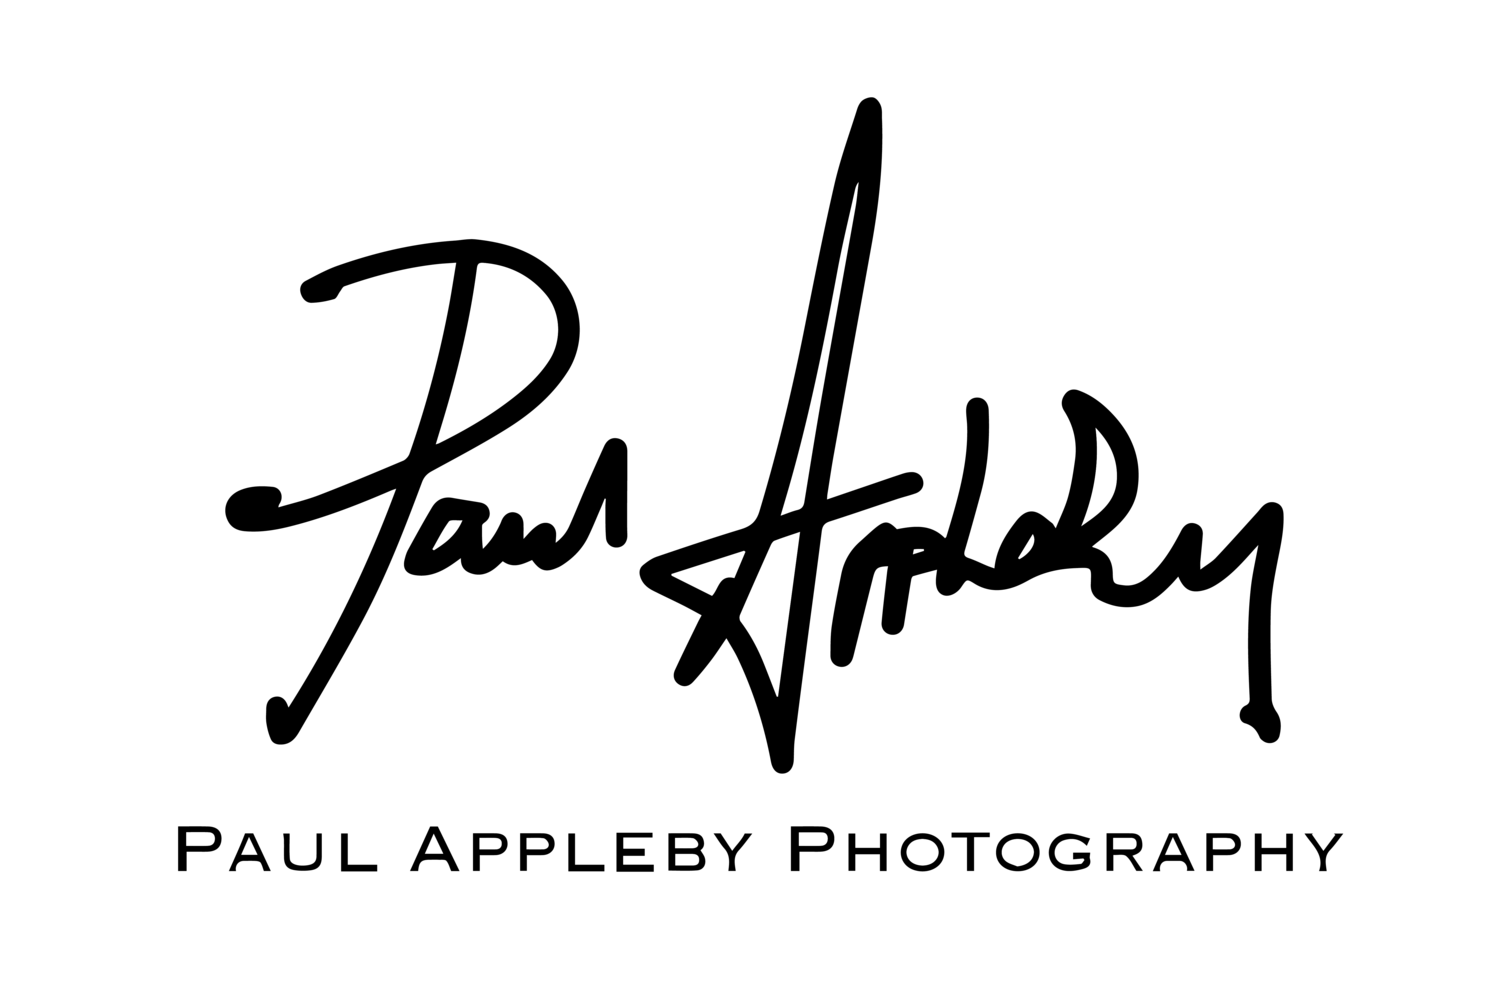 Paul Appleby